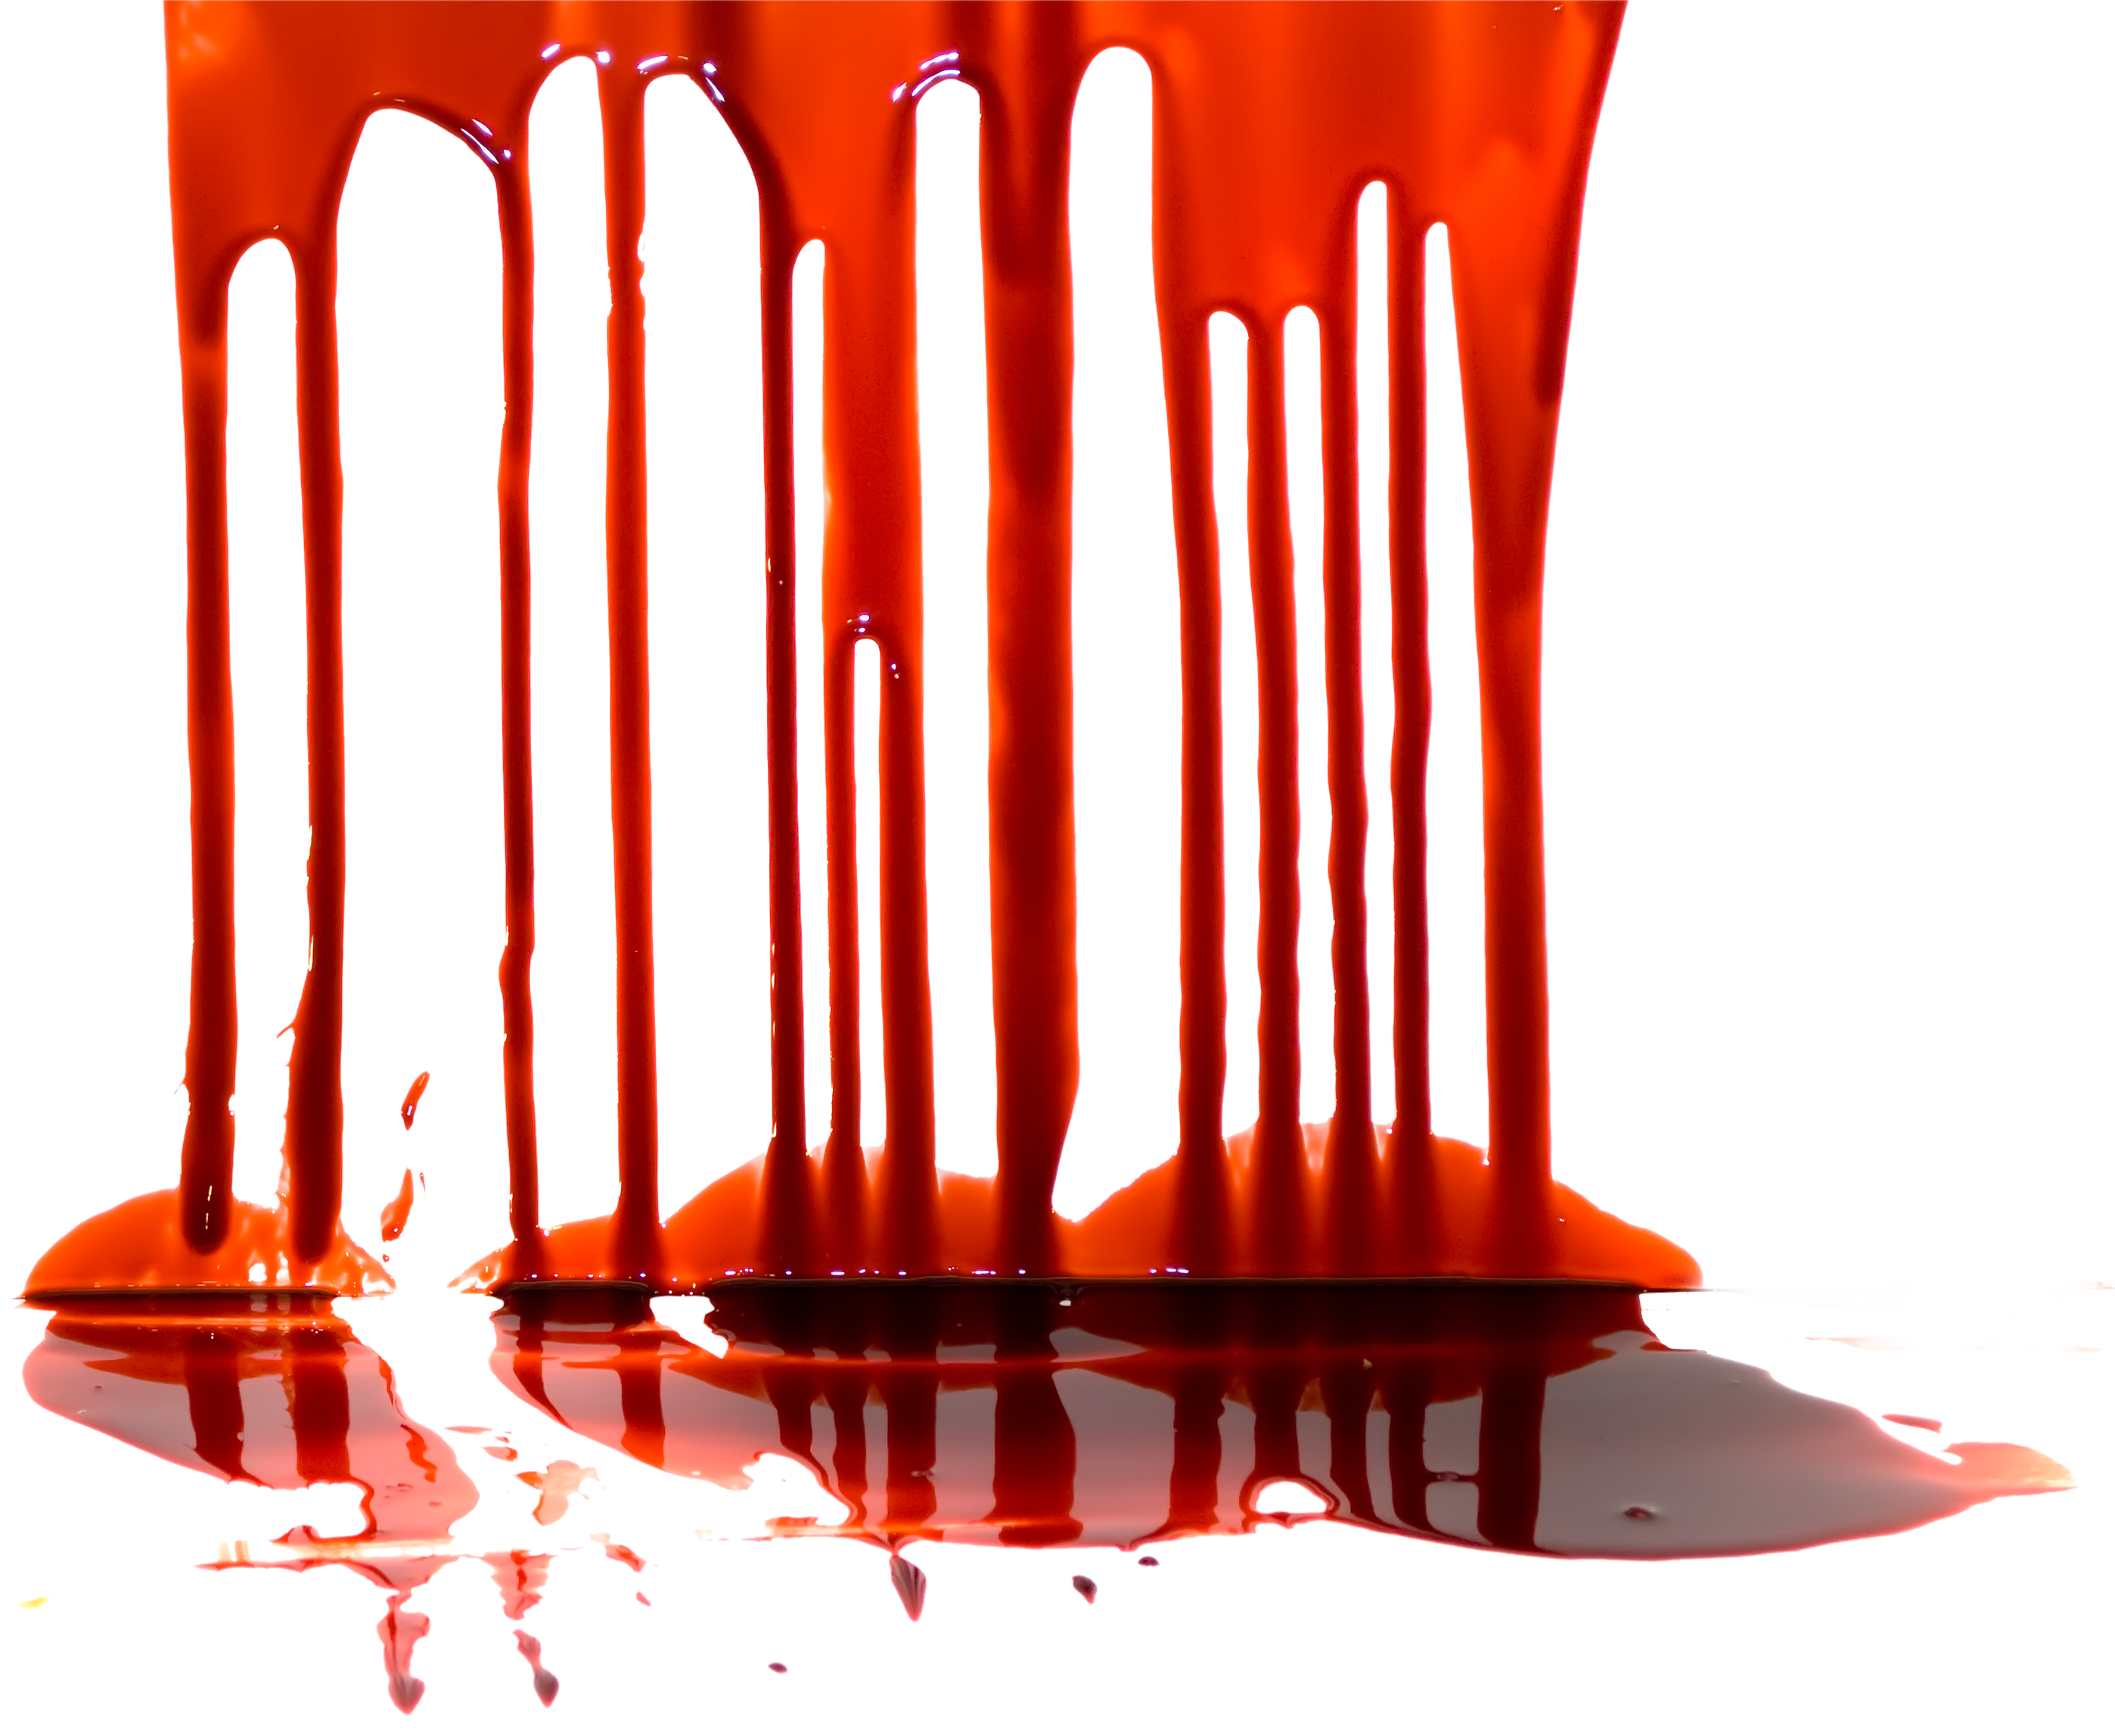 Blood drip png transparent. Splatter sixty seven isolated